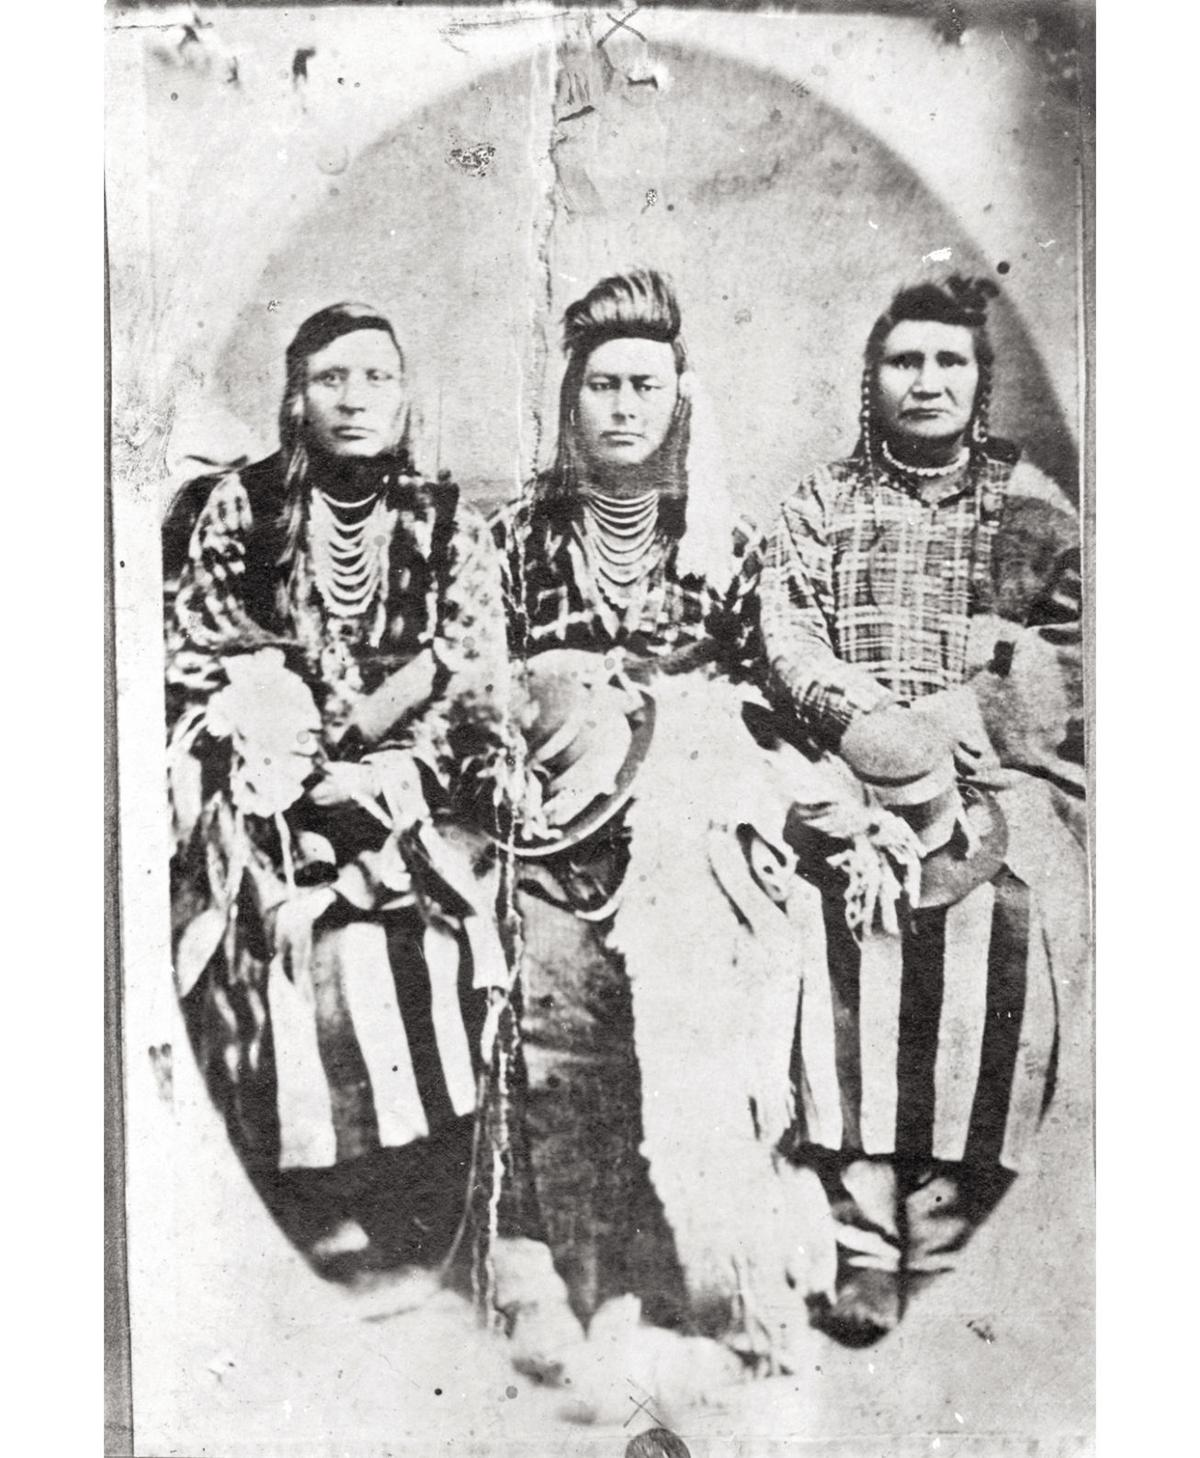 Nez Perce leader and two men, 1875